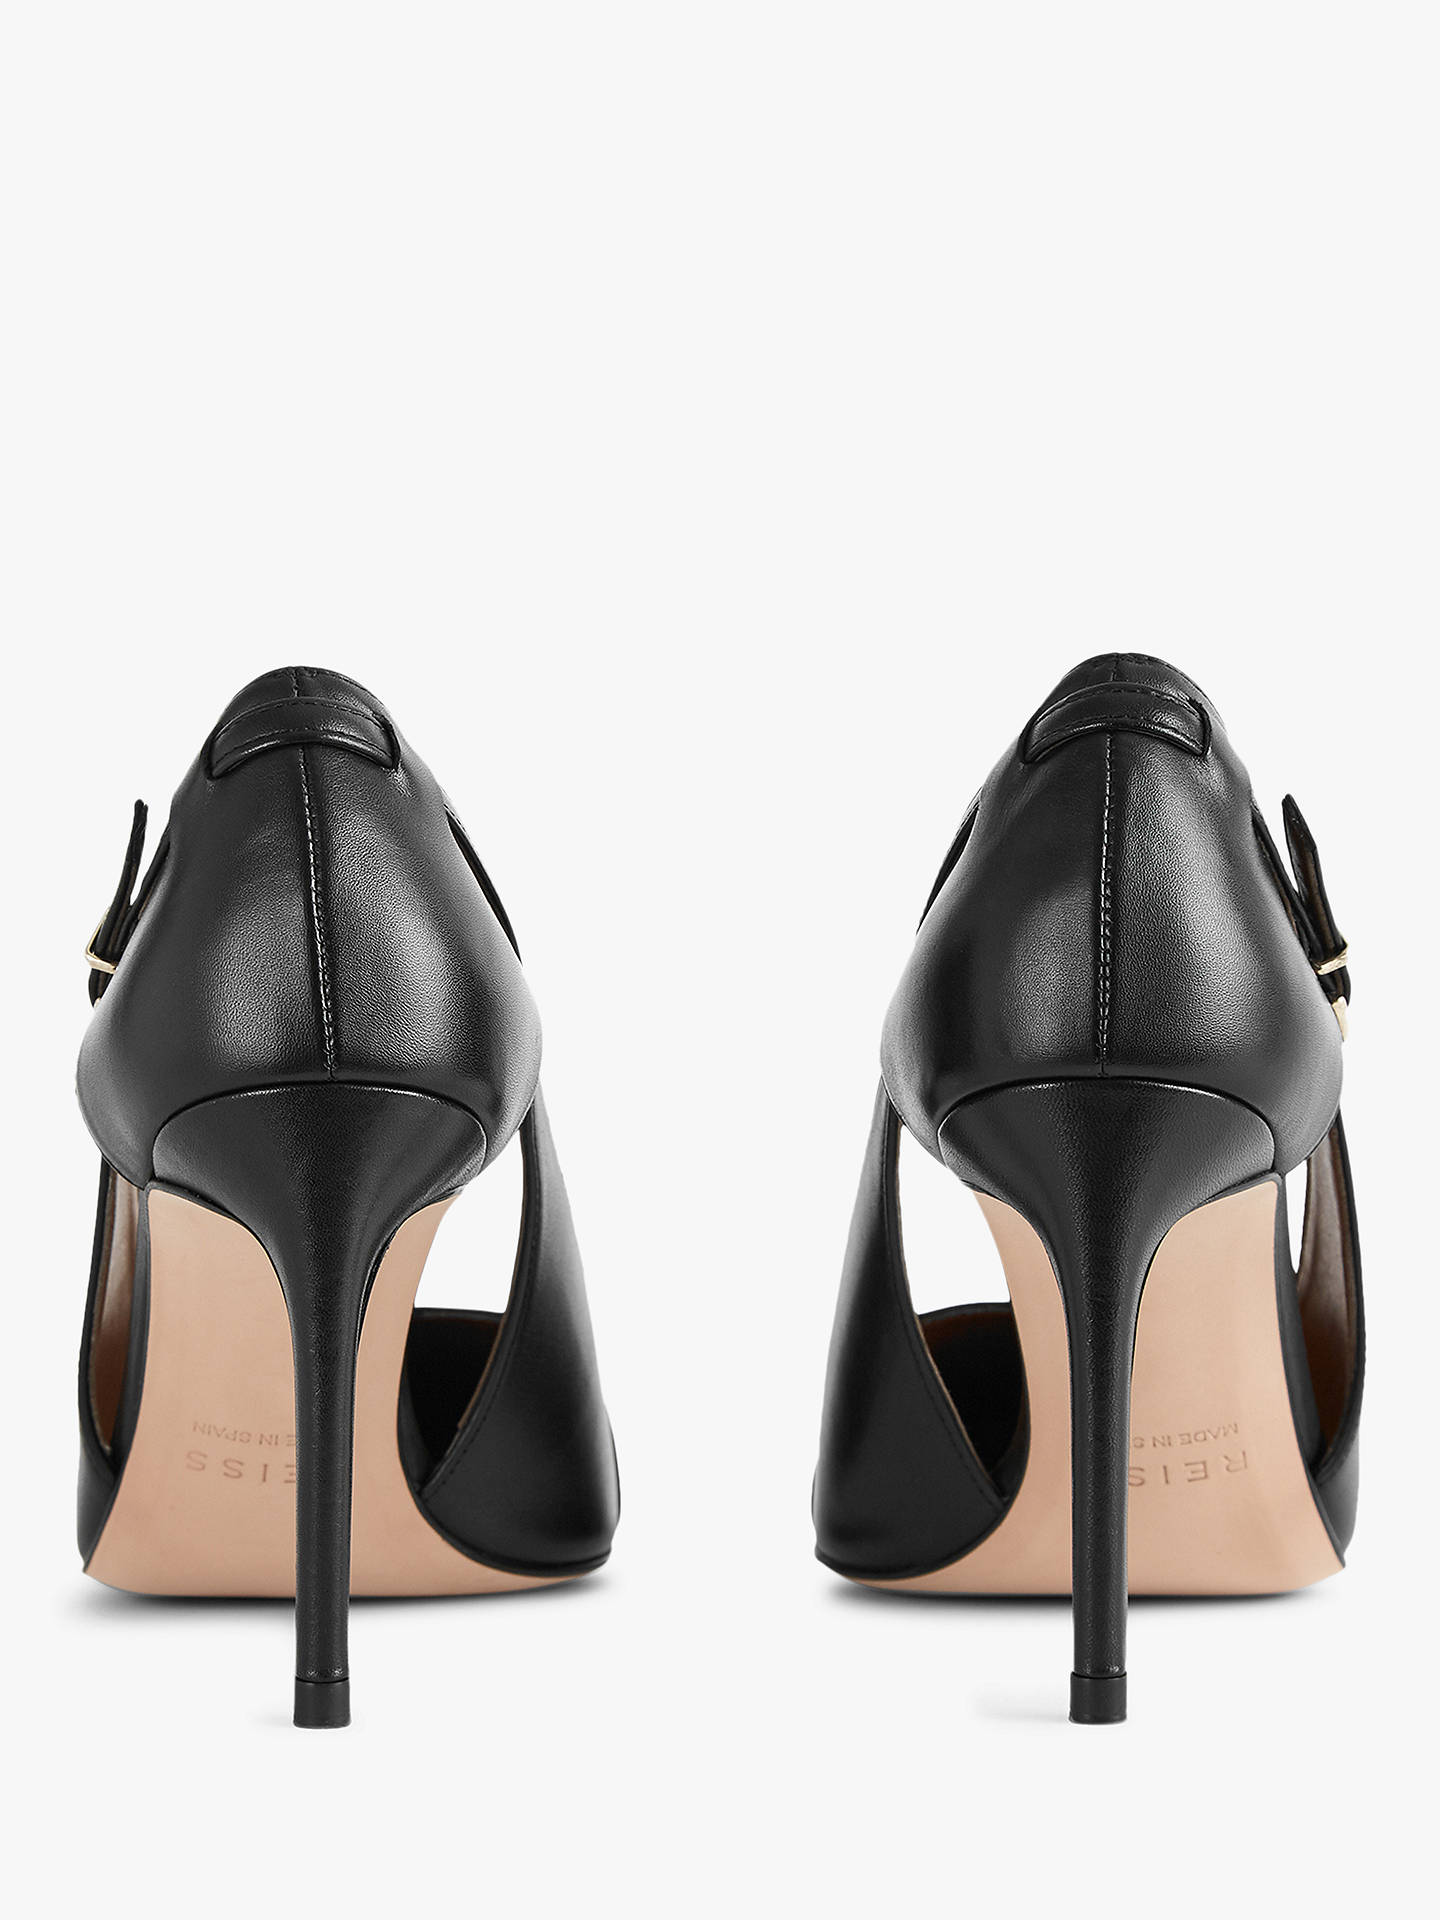 BuyReiss Halley Buckle Detail Pointed Heeled Court Shoes, Black Leather, 5 Online at johnlewis.com